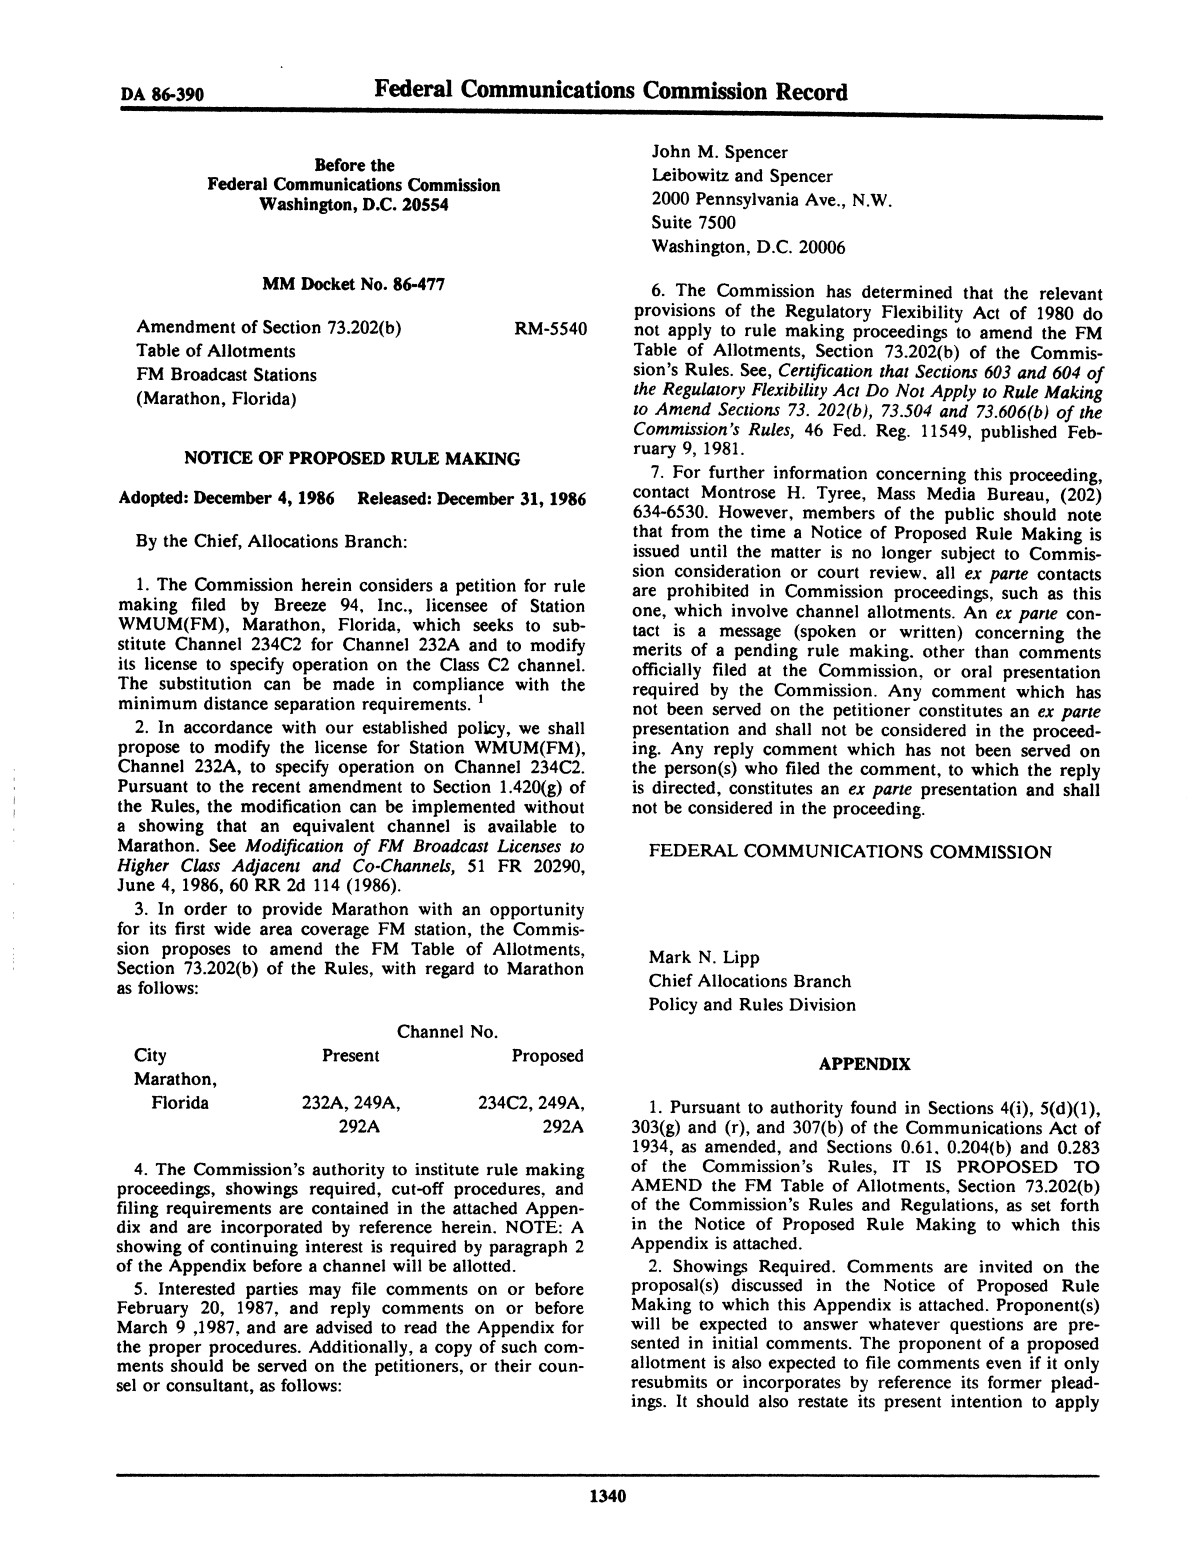 FCC Record, Volume 1, No. 7, Pages 1267 to 1368, December 22, 1986 - January 2, 1987                                                                                                      1340